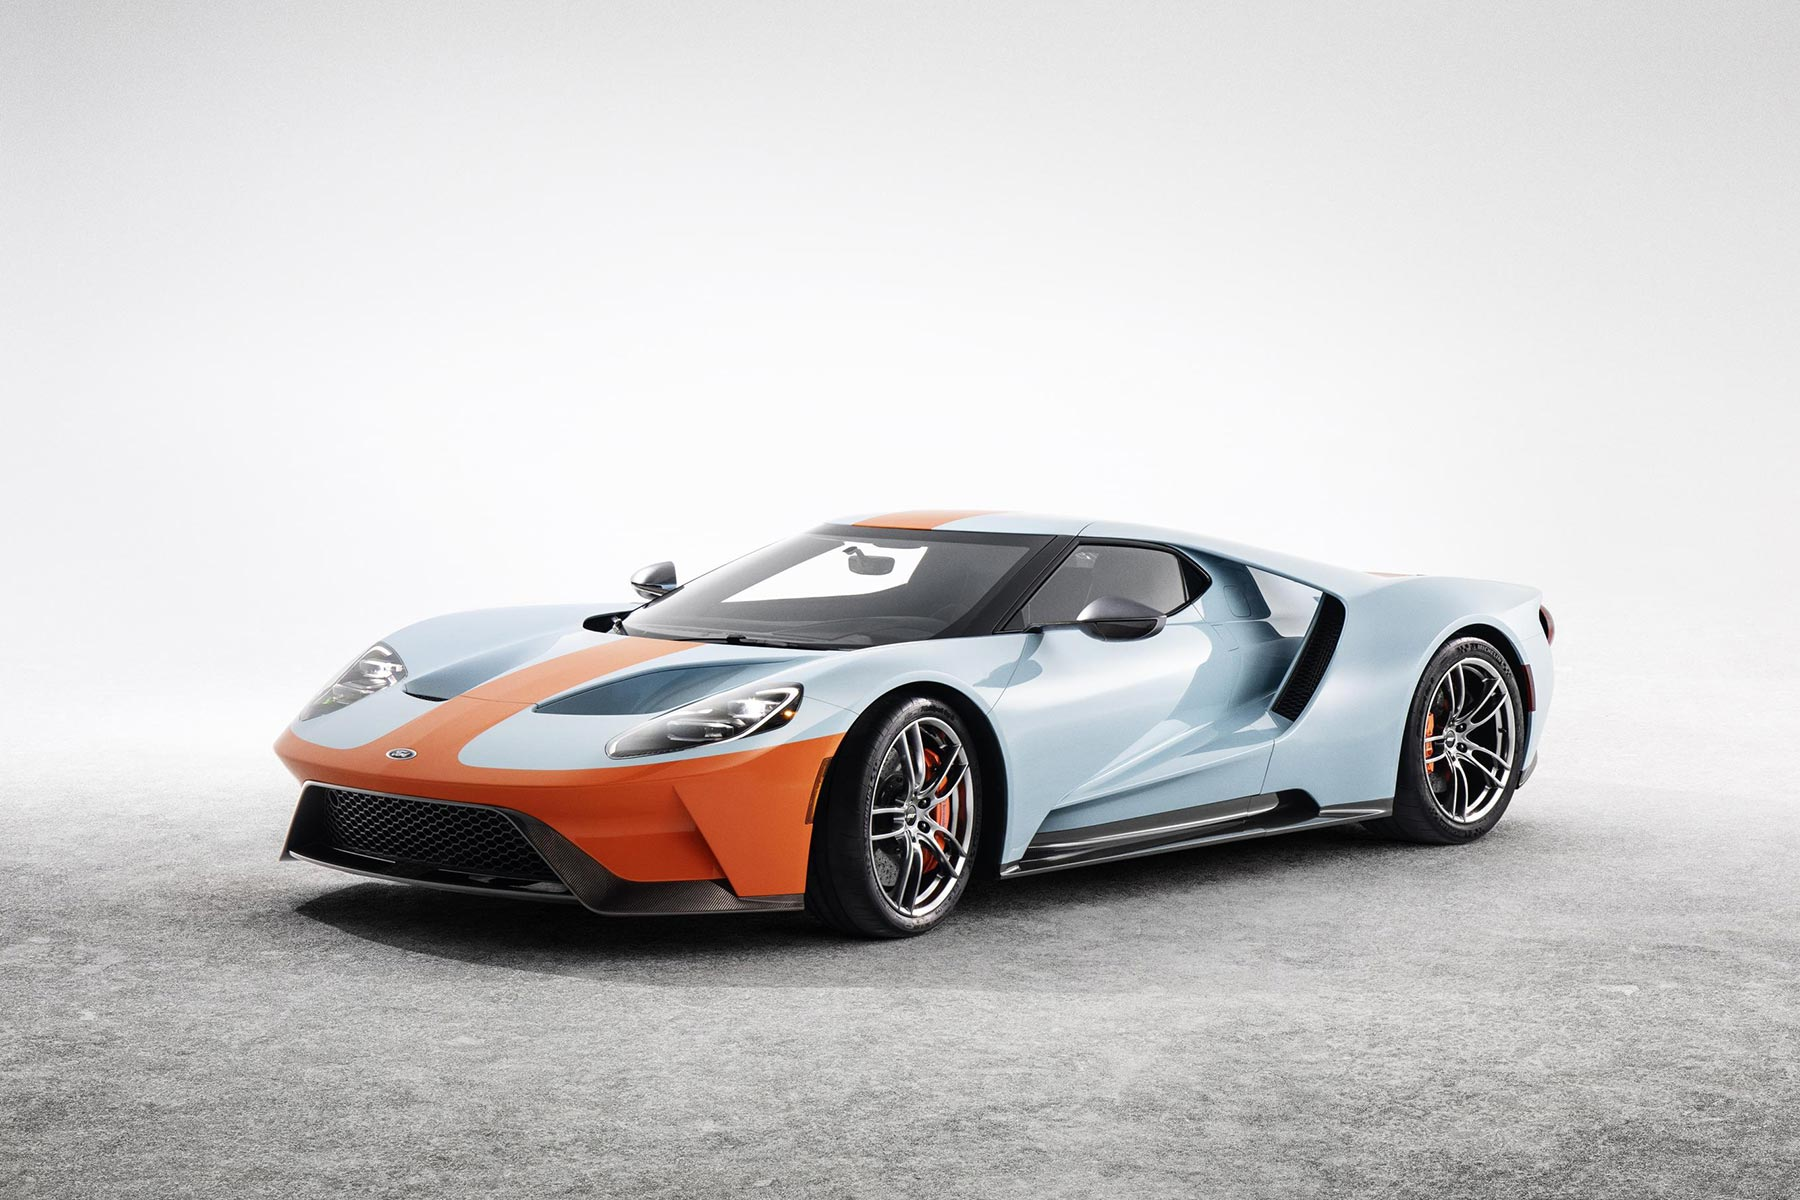 2019 ford gt heritage edition brings back iconic gulf oil livery